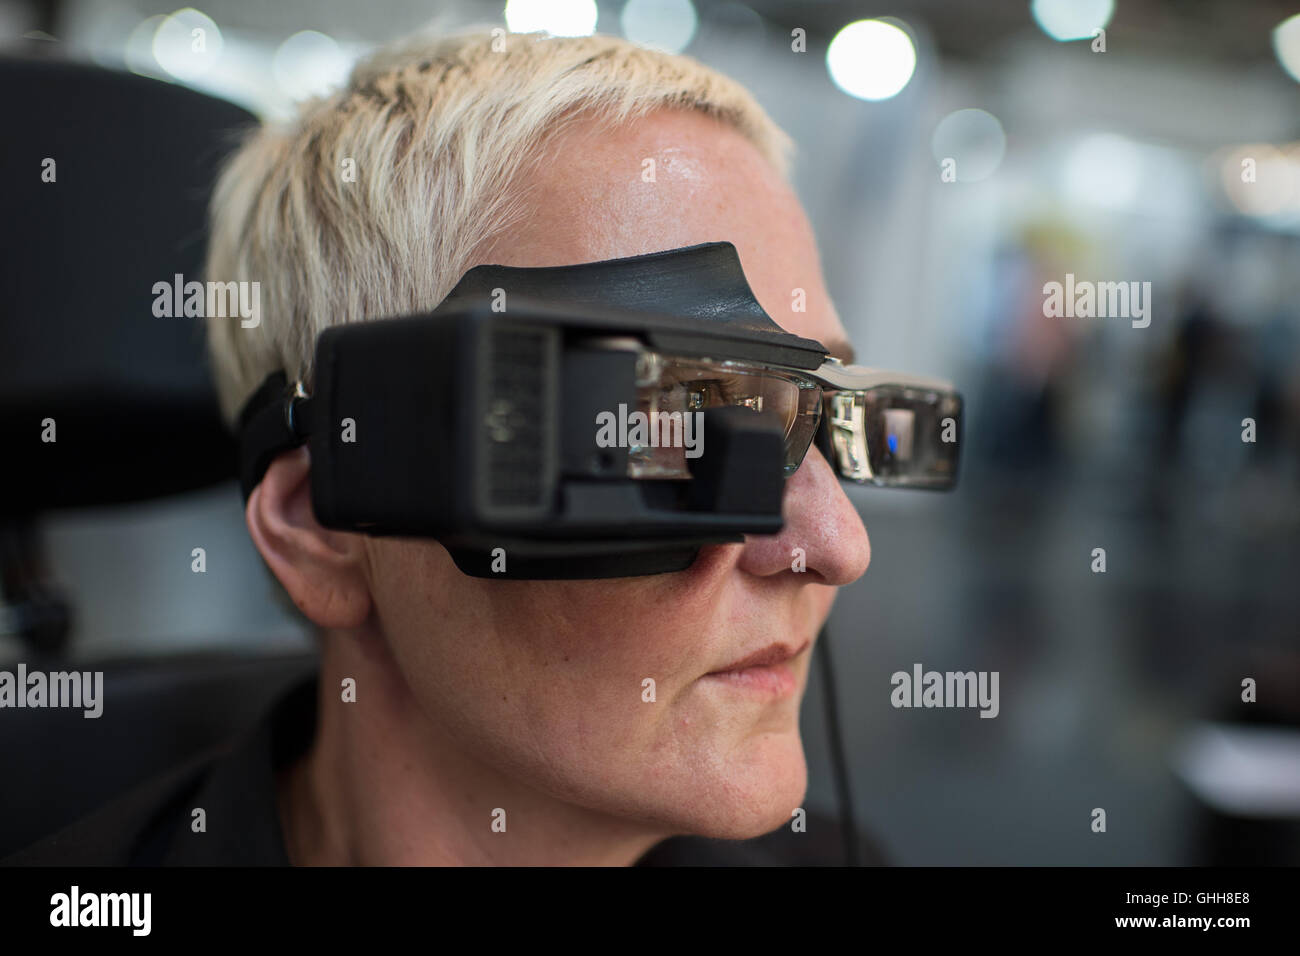 Duesseldorf, Germany. 28th Sep, 2016. A woman wearing the so-called 'Eye Speak' glasses during the opening of the international care fair 'Rheacare' in Duesseldorf, Germany, 28 September 2016. The glasses are equipped with a screen and a virtual keyboard. An inbuild camera recognises the eye movement of the person wearing the glasses, allowing the selection of letters on the monitor. The glasses are said to be a communication system for people with extremely limited movement and communication. The fair runs until 1 October 2016. PHOTO: WOLFRAM KASTL/dpa/Alamy Live News Stock Photo